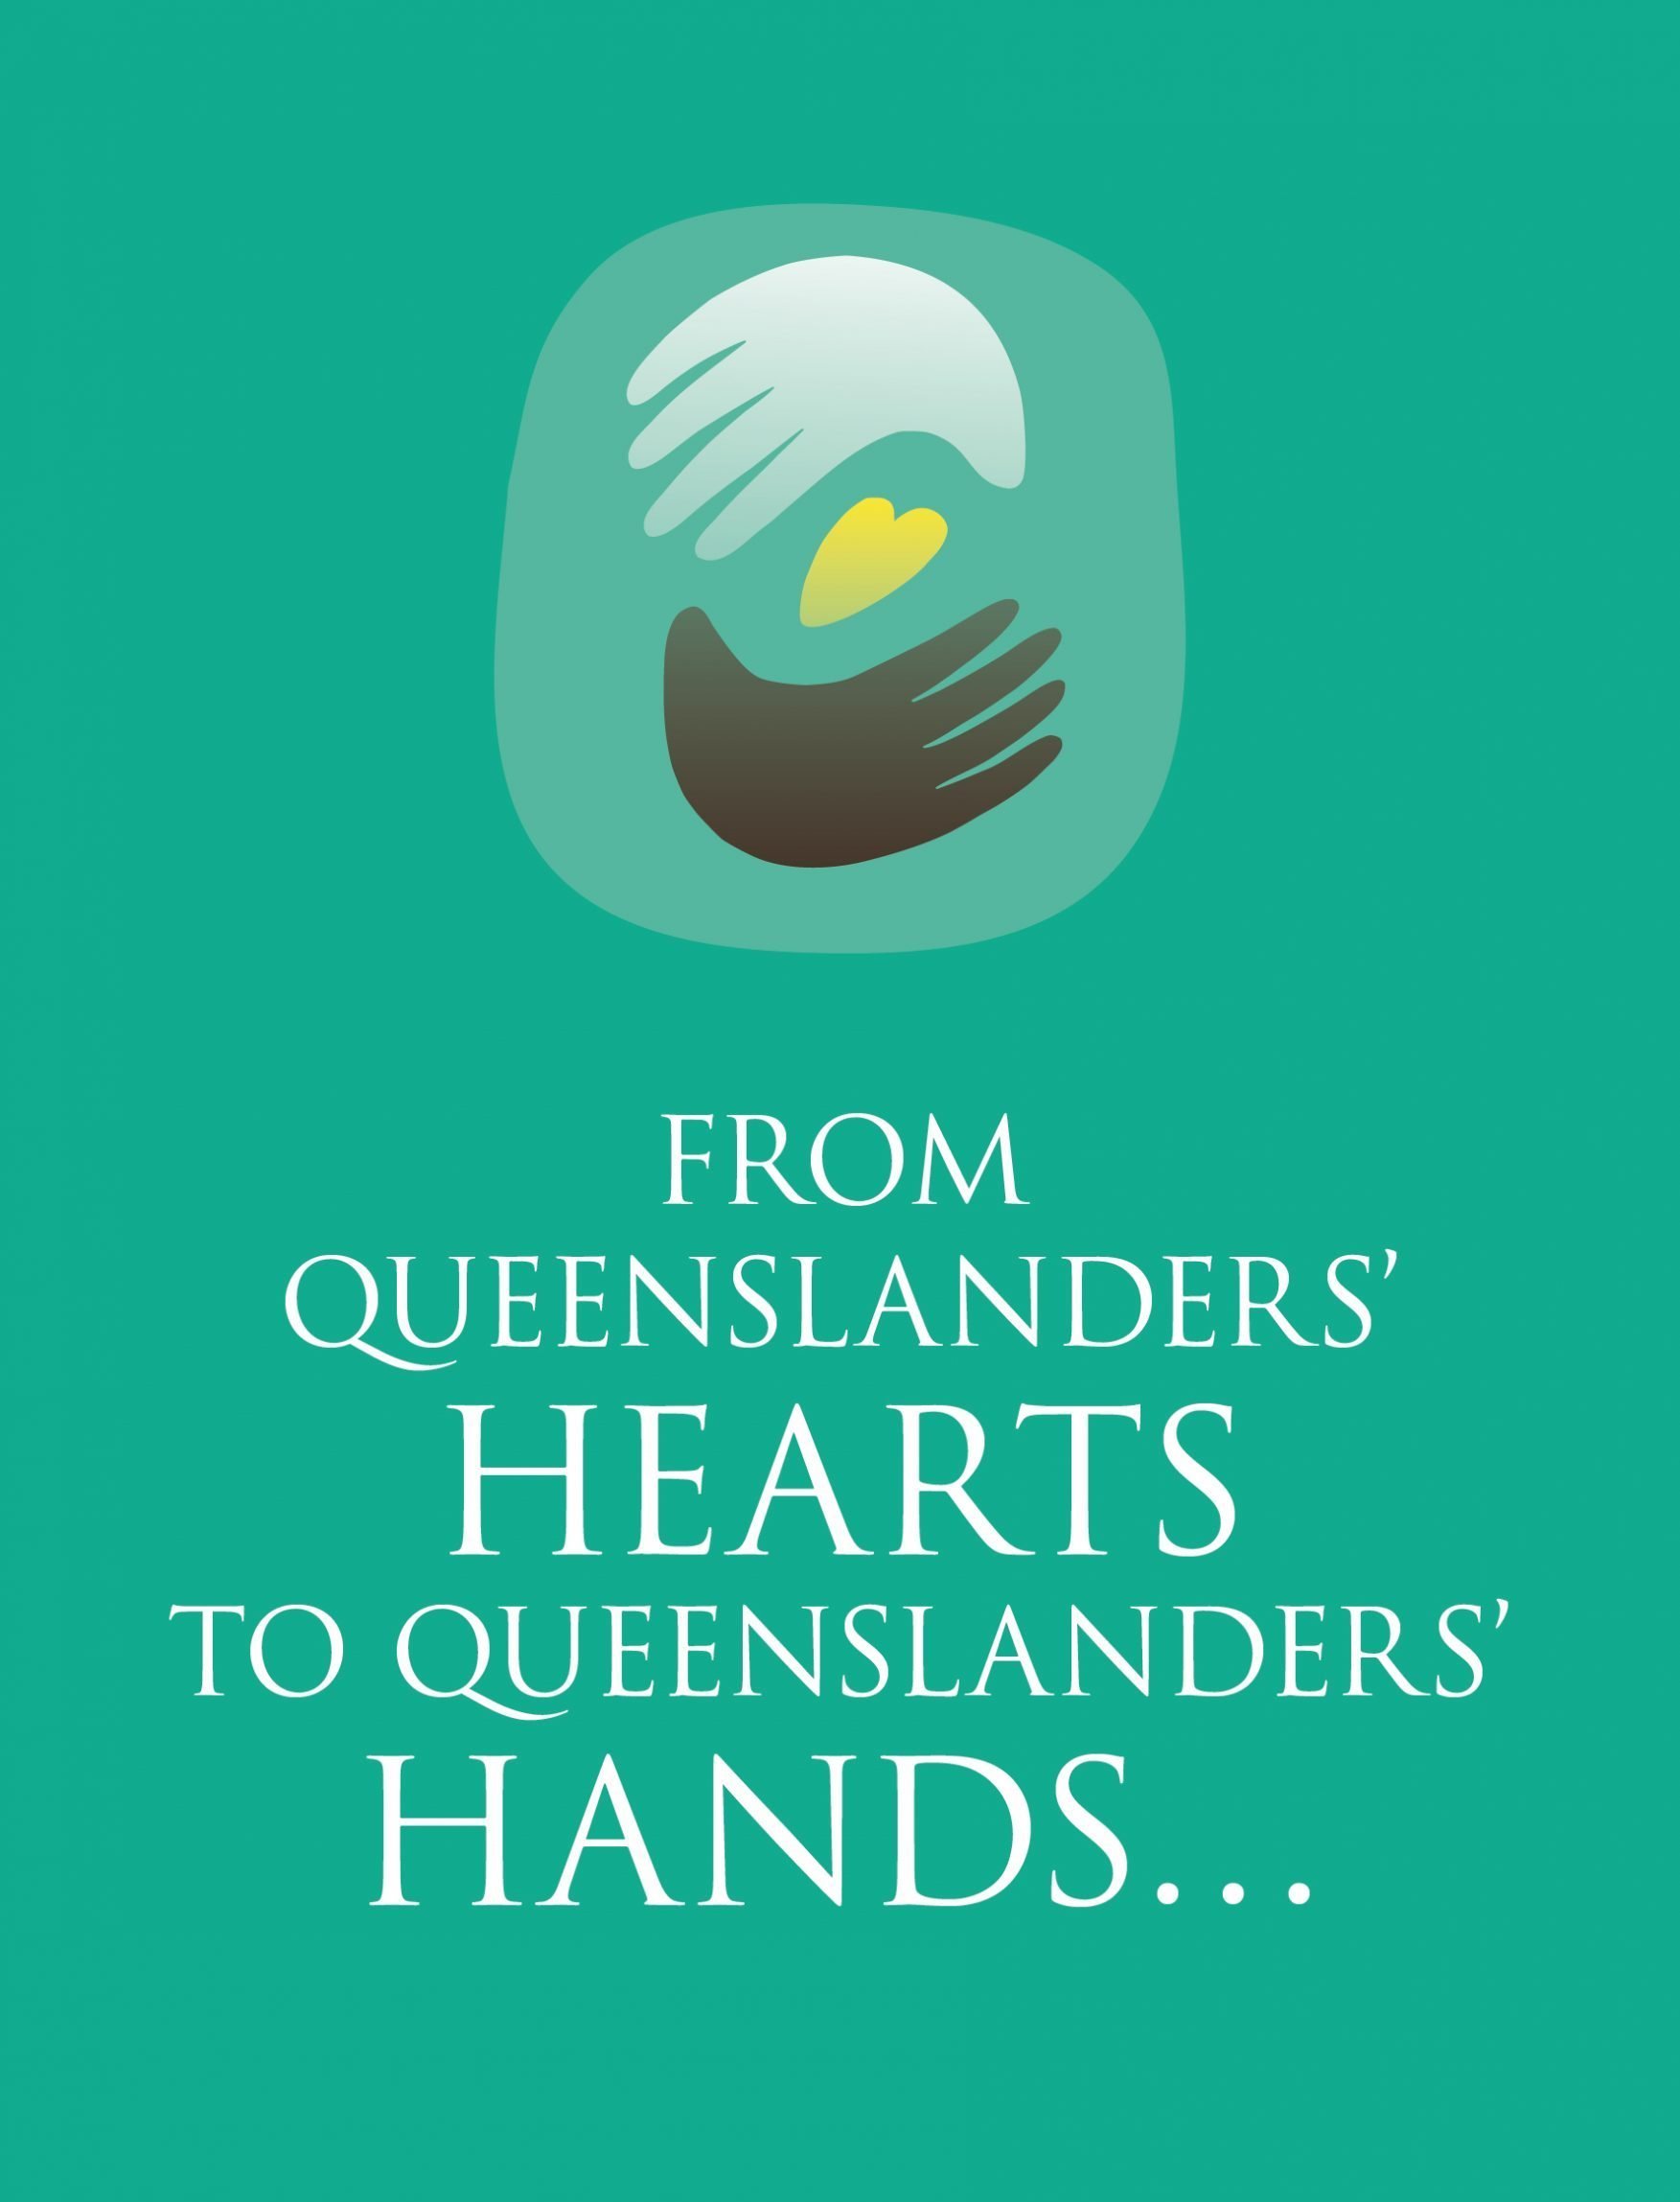 Hand Heart Pocket from Queenslanders' Hearts